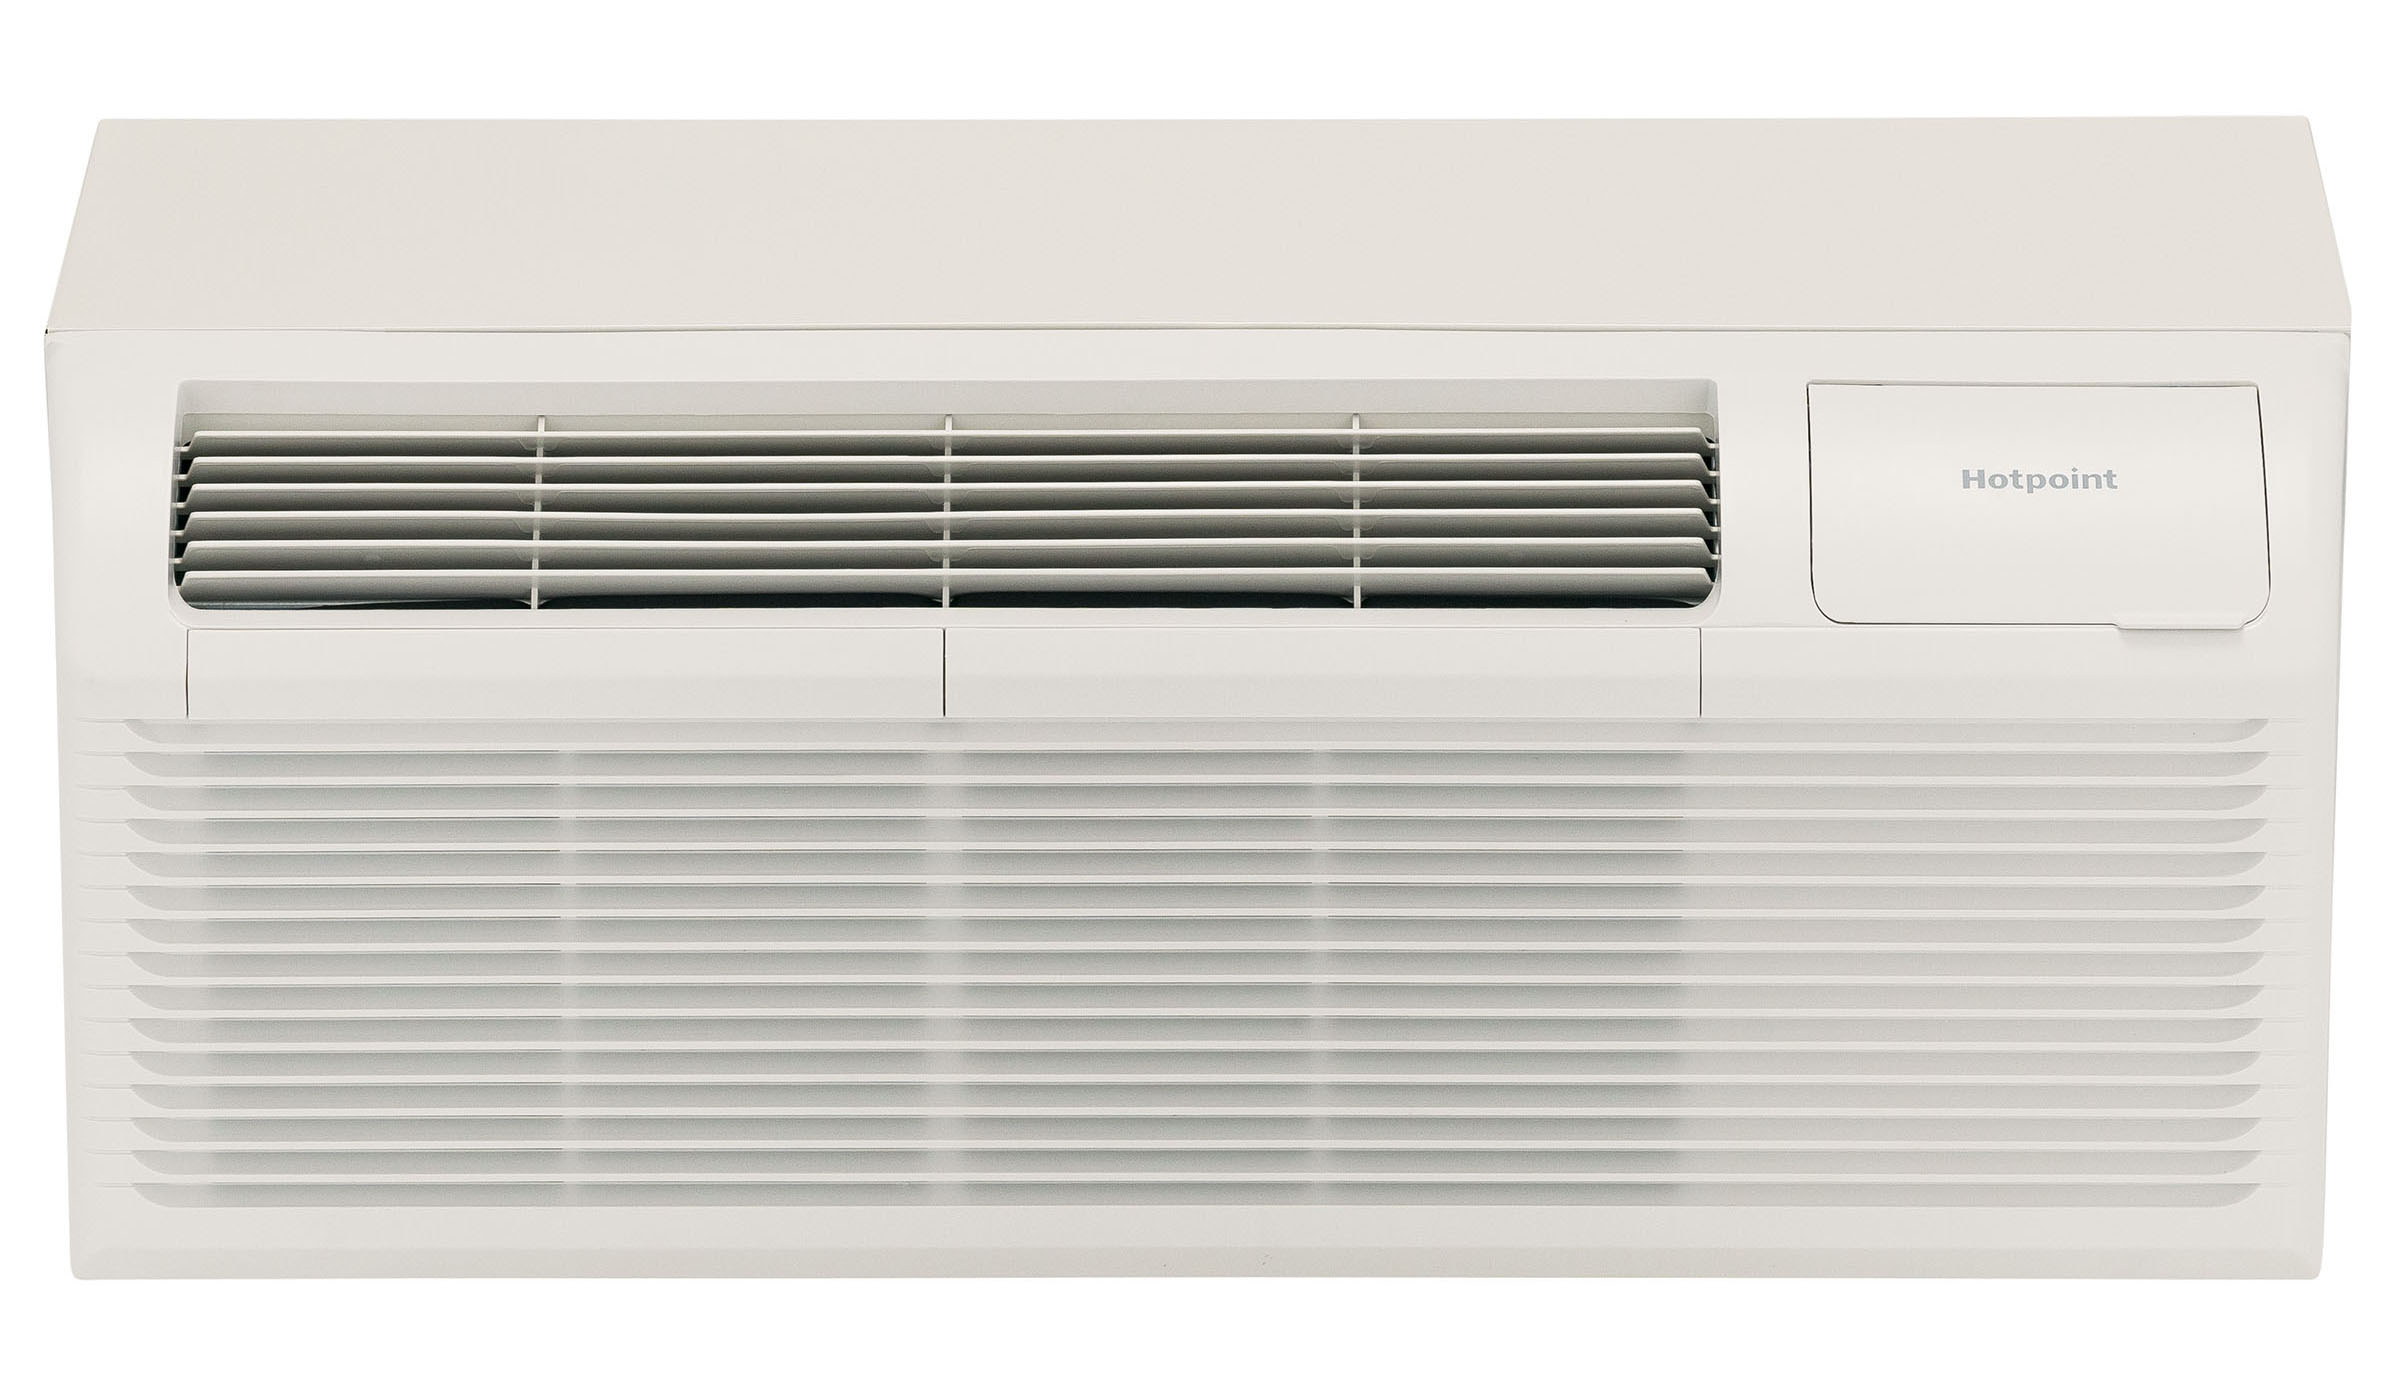 Hotpoint AH11E07D2B 7000 BTU PTAC Air Conditioner with Electric Heat - 15 Amp - 208/230 Volt